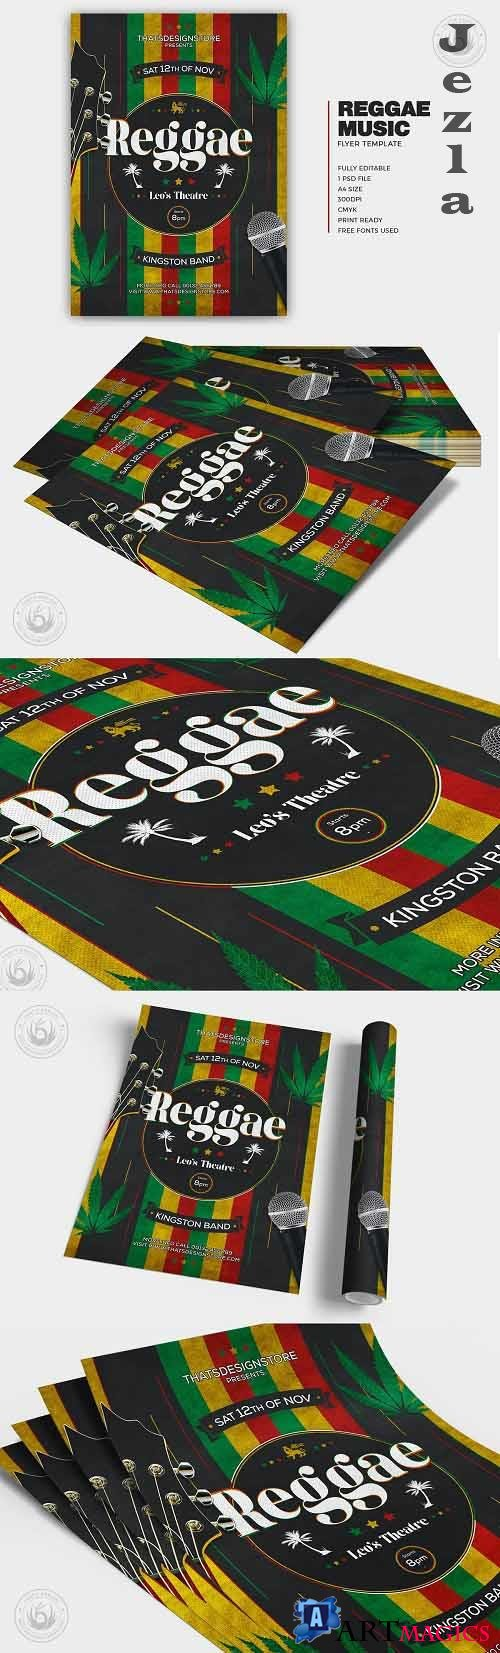 Reggae Music Flyer Template - 5836679